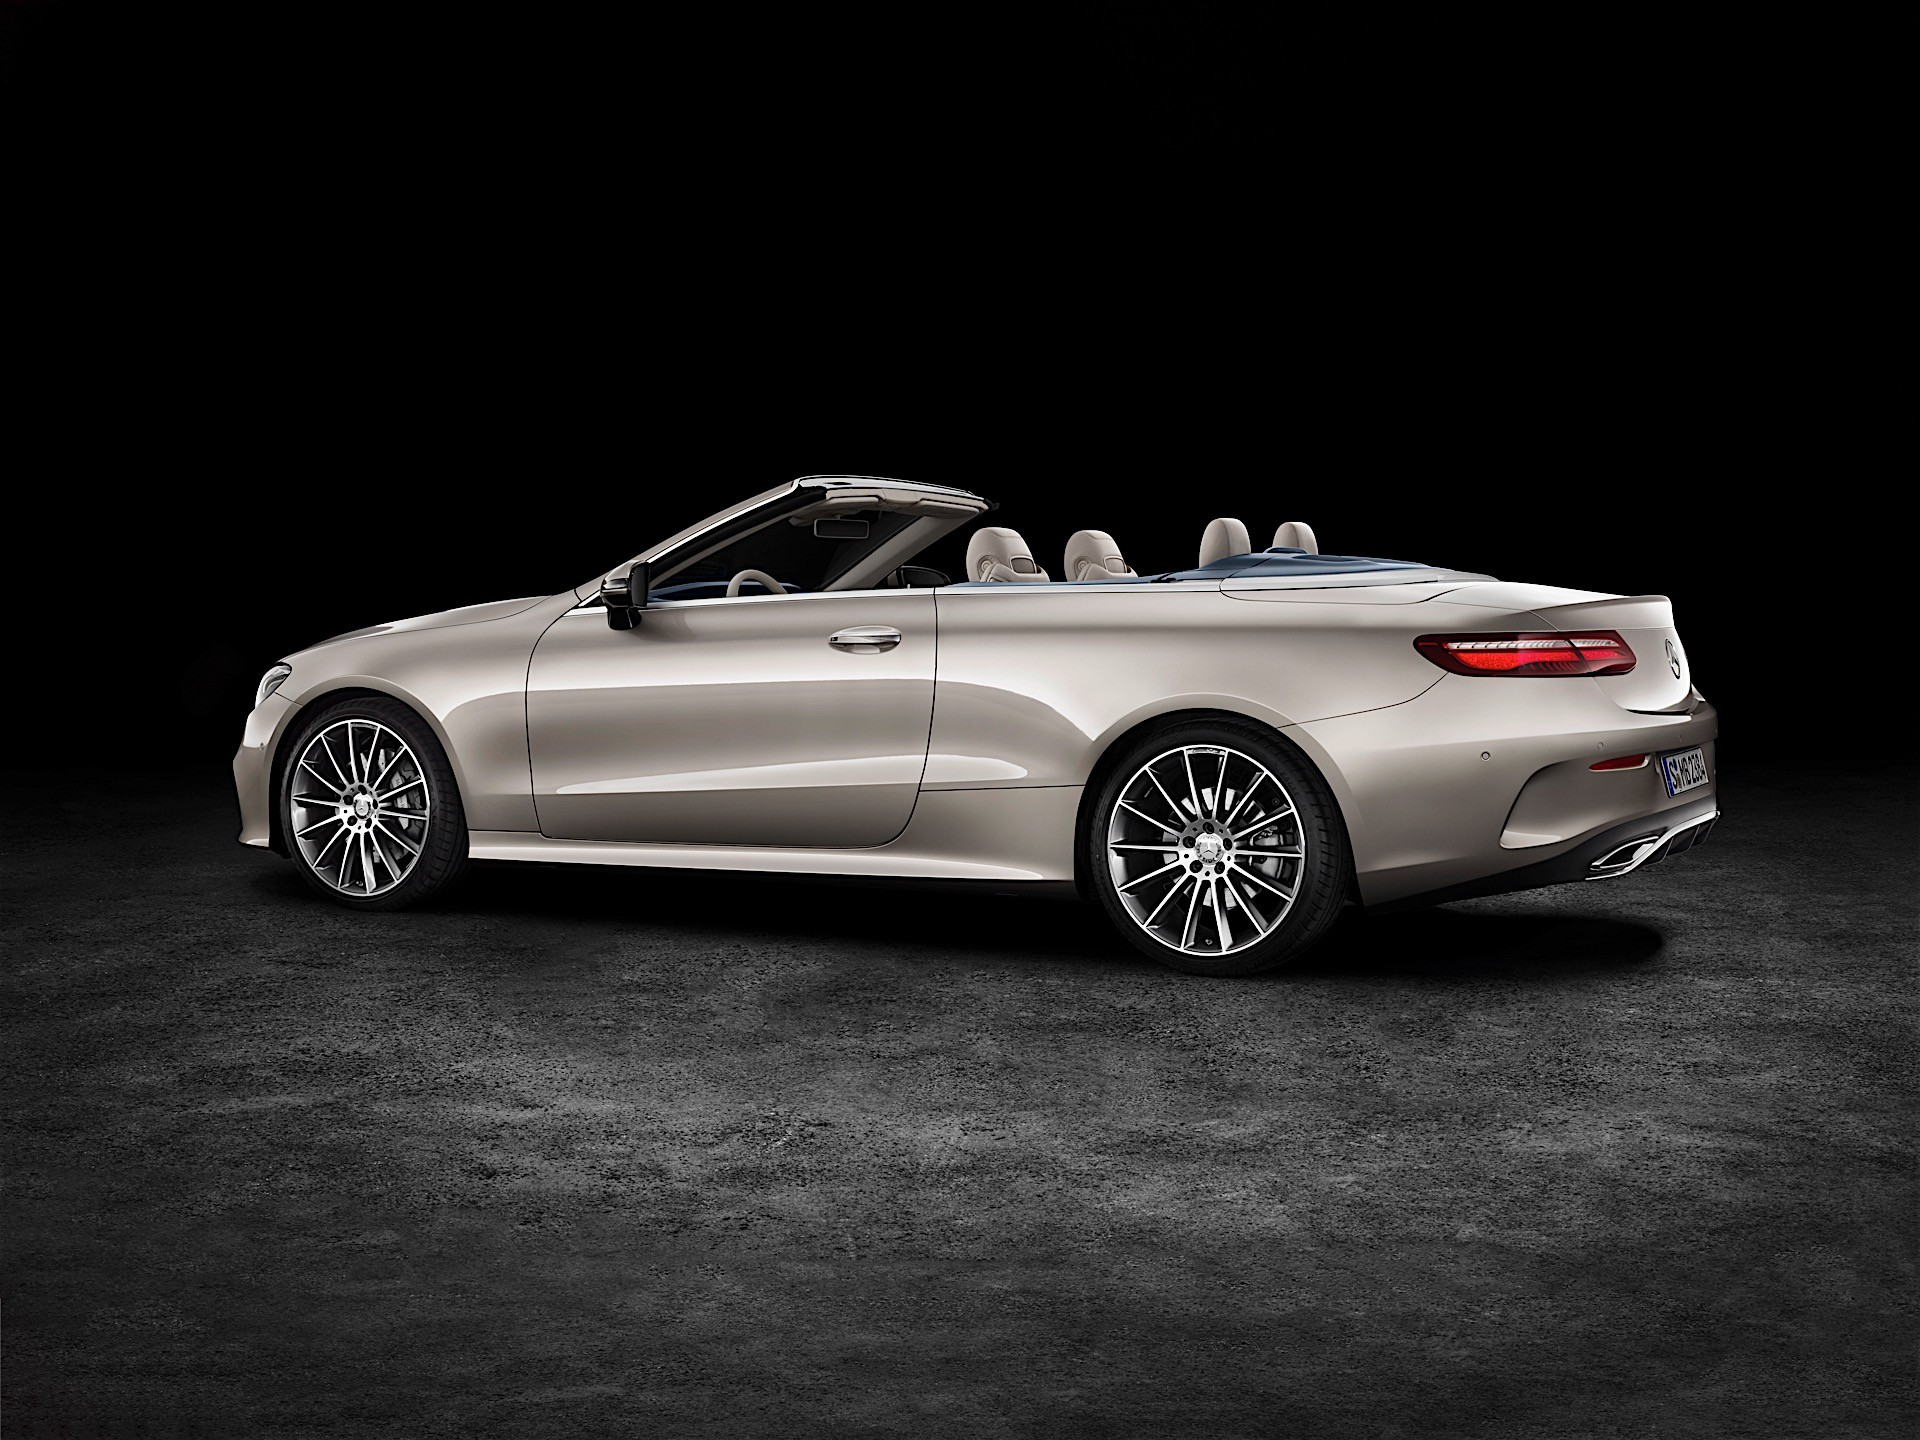 2018 mercedes benz e350 coupe and cabrio introduce mild hybrid m 264 engine autoevolution. Black Bedroom Furniture Sets. Home Design Ideas